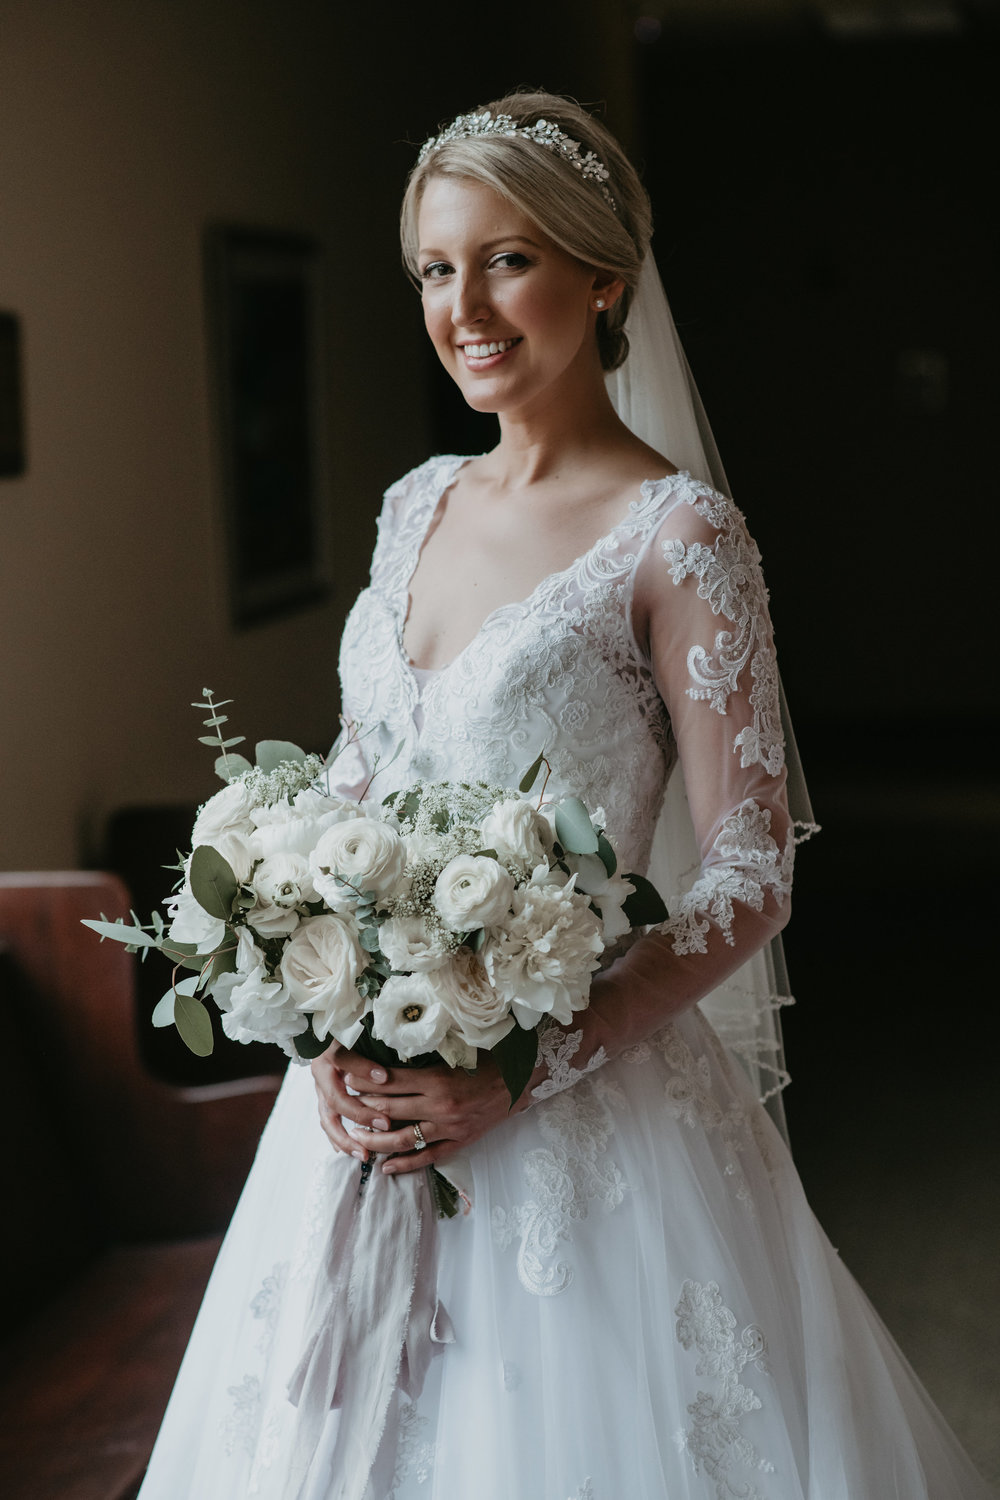 Patterson_Wedding_Bridal_Portraits_008.jpg